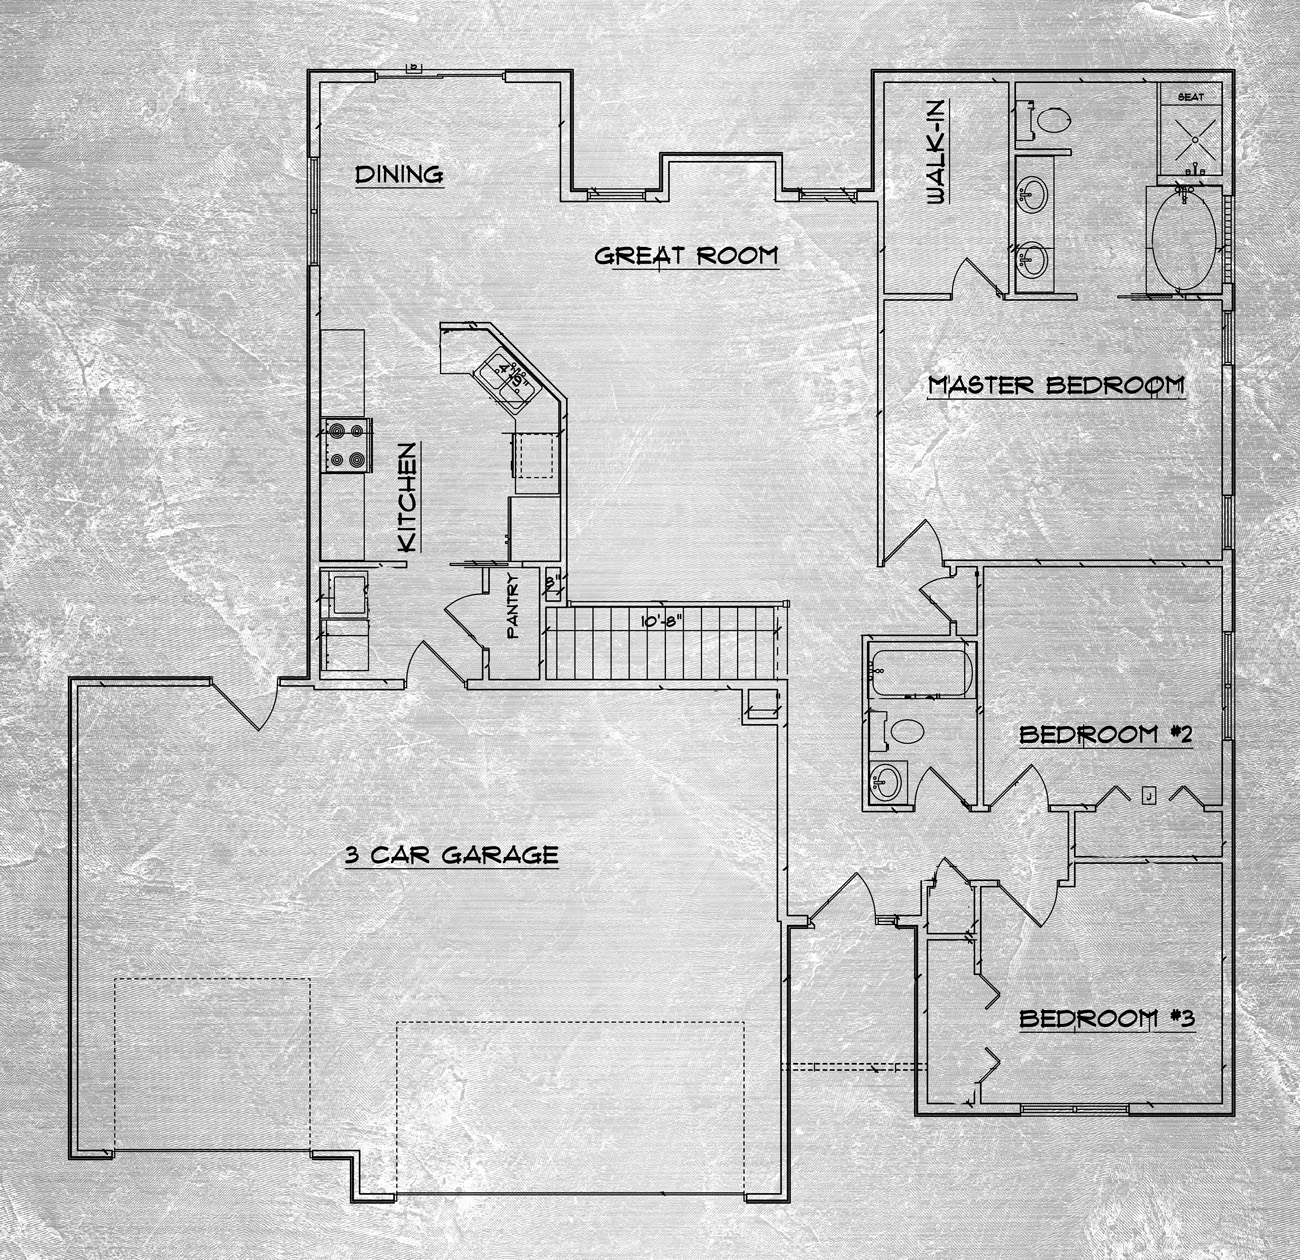 Dan gregg construction cheyenne wyoming for Summit homes floor plans